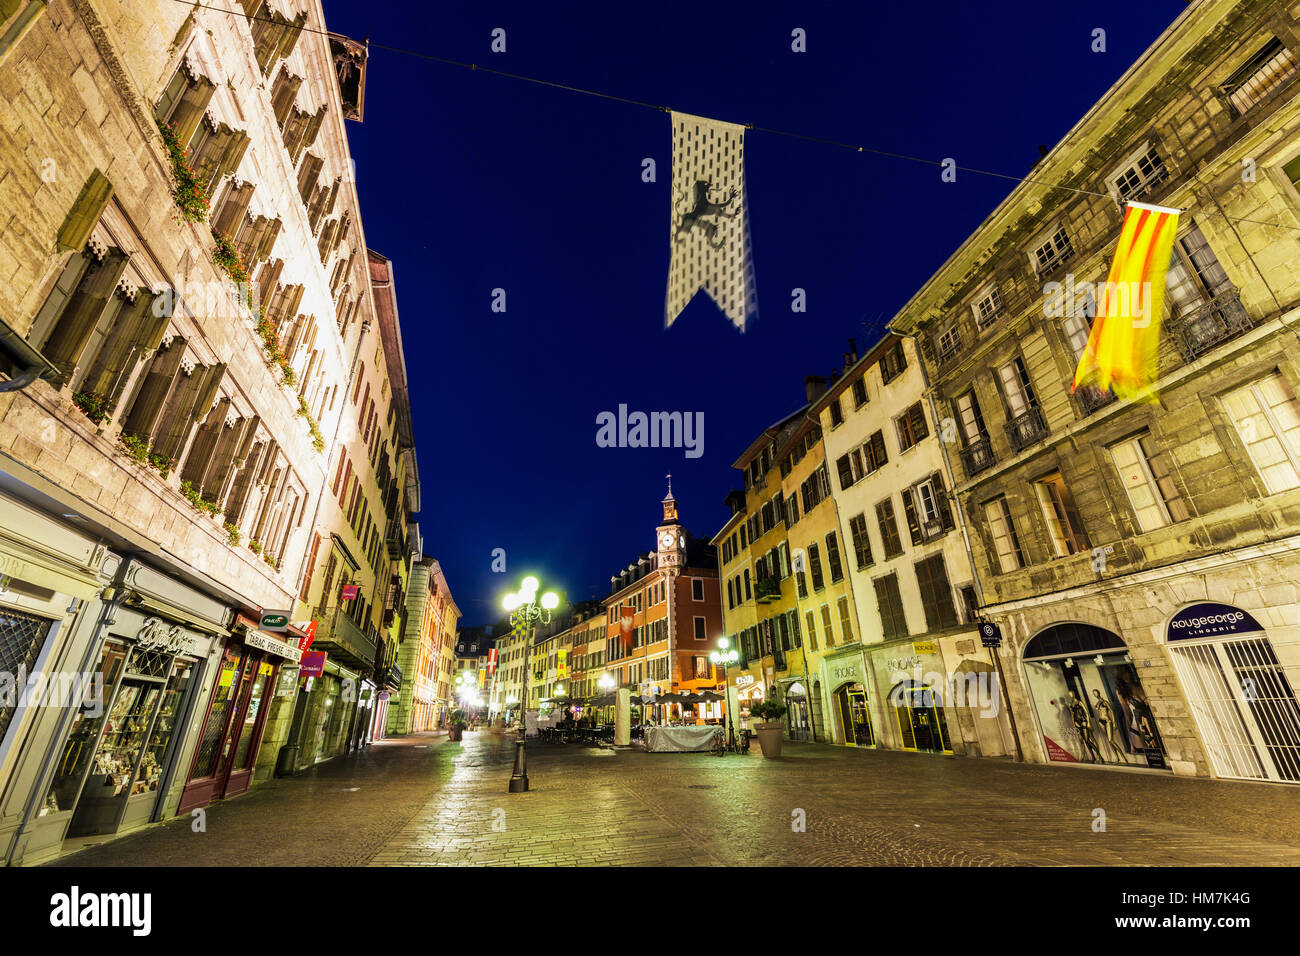 France, Auvergne-Rhone-Alpes, Chambery, Street at night - Stock Image